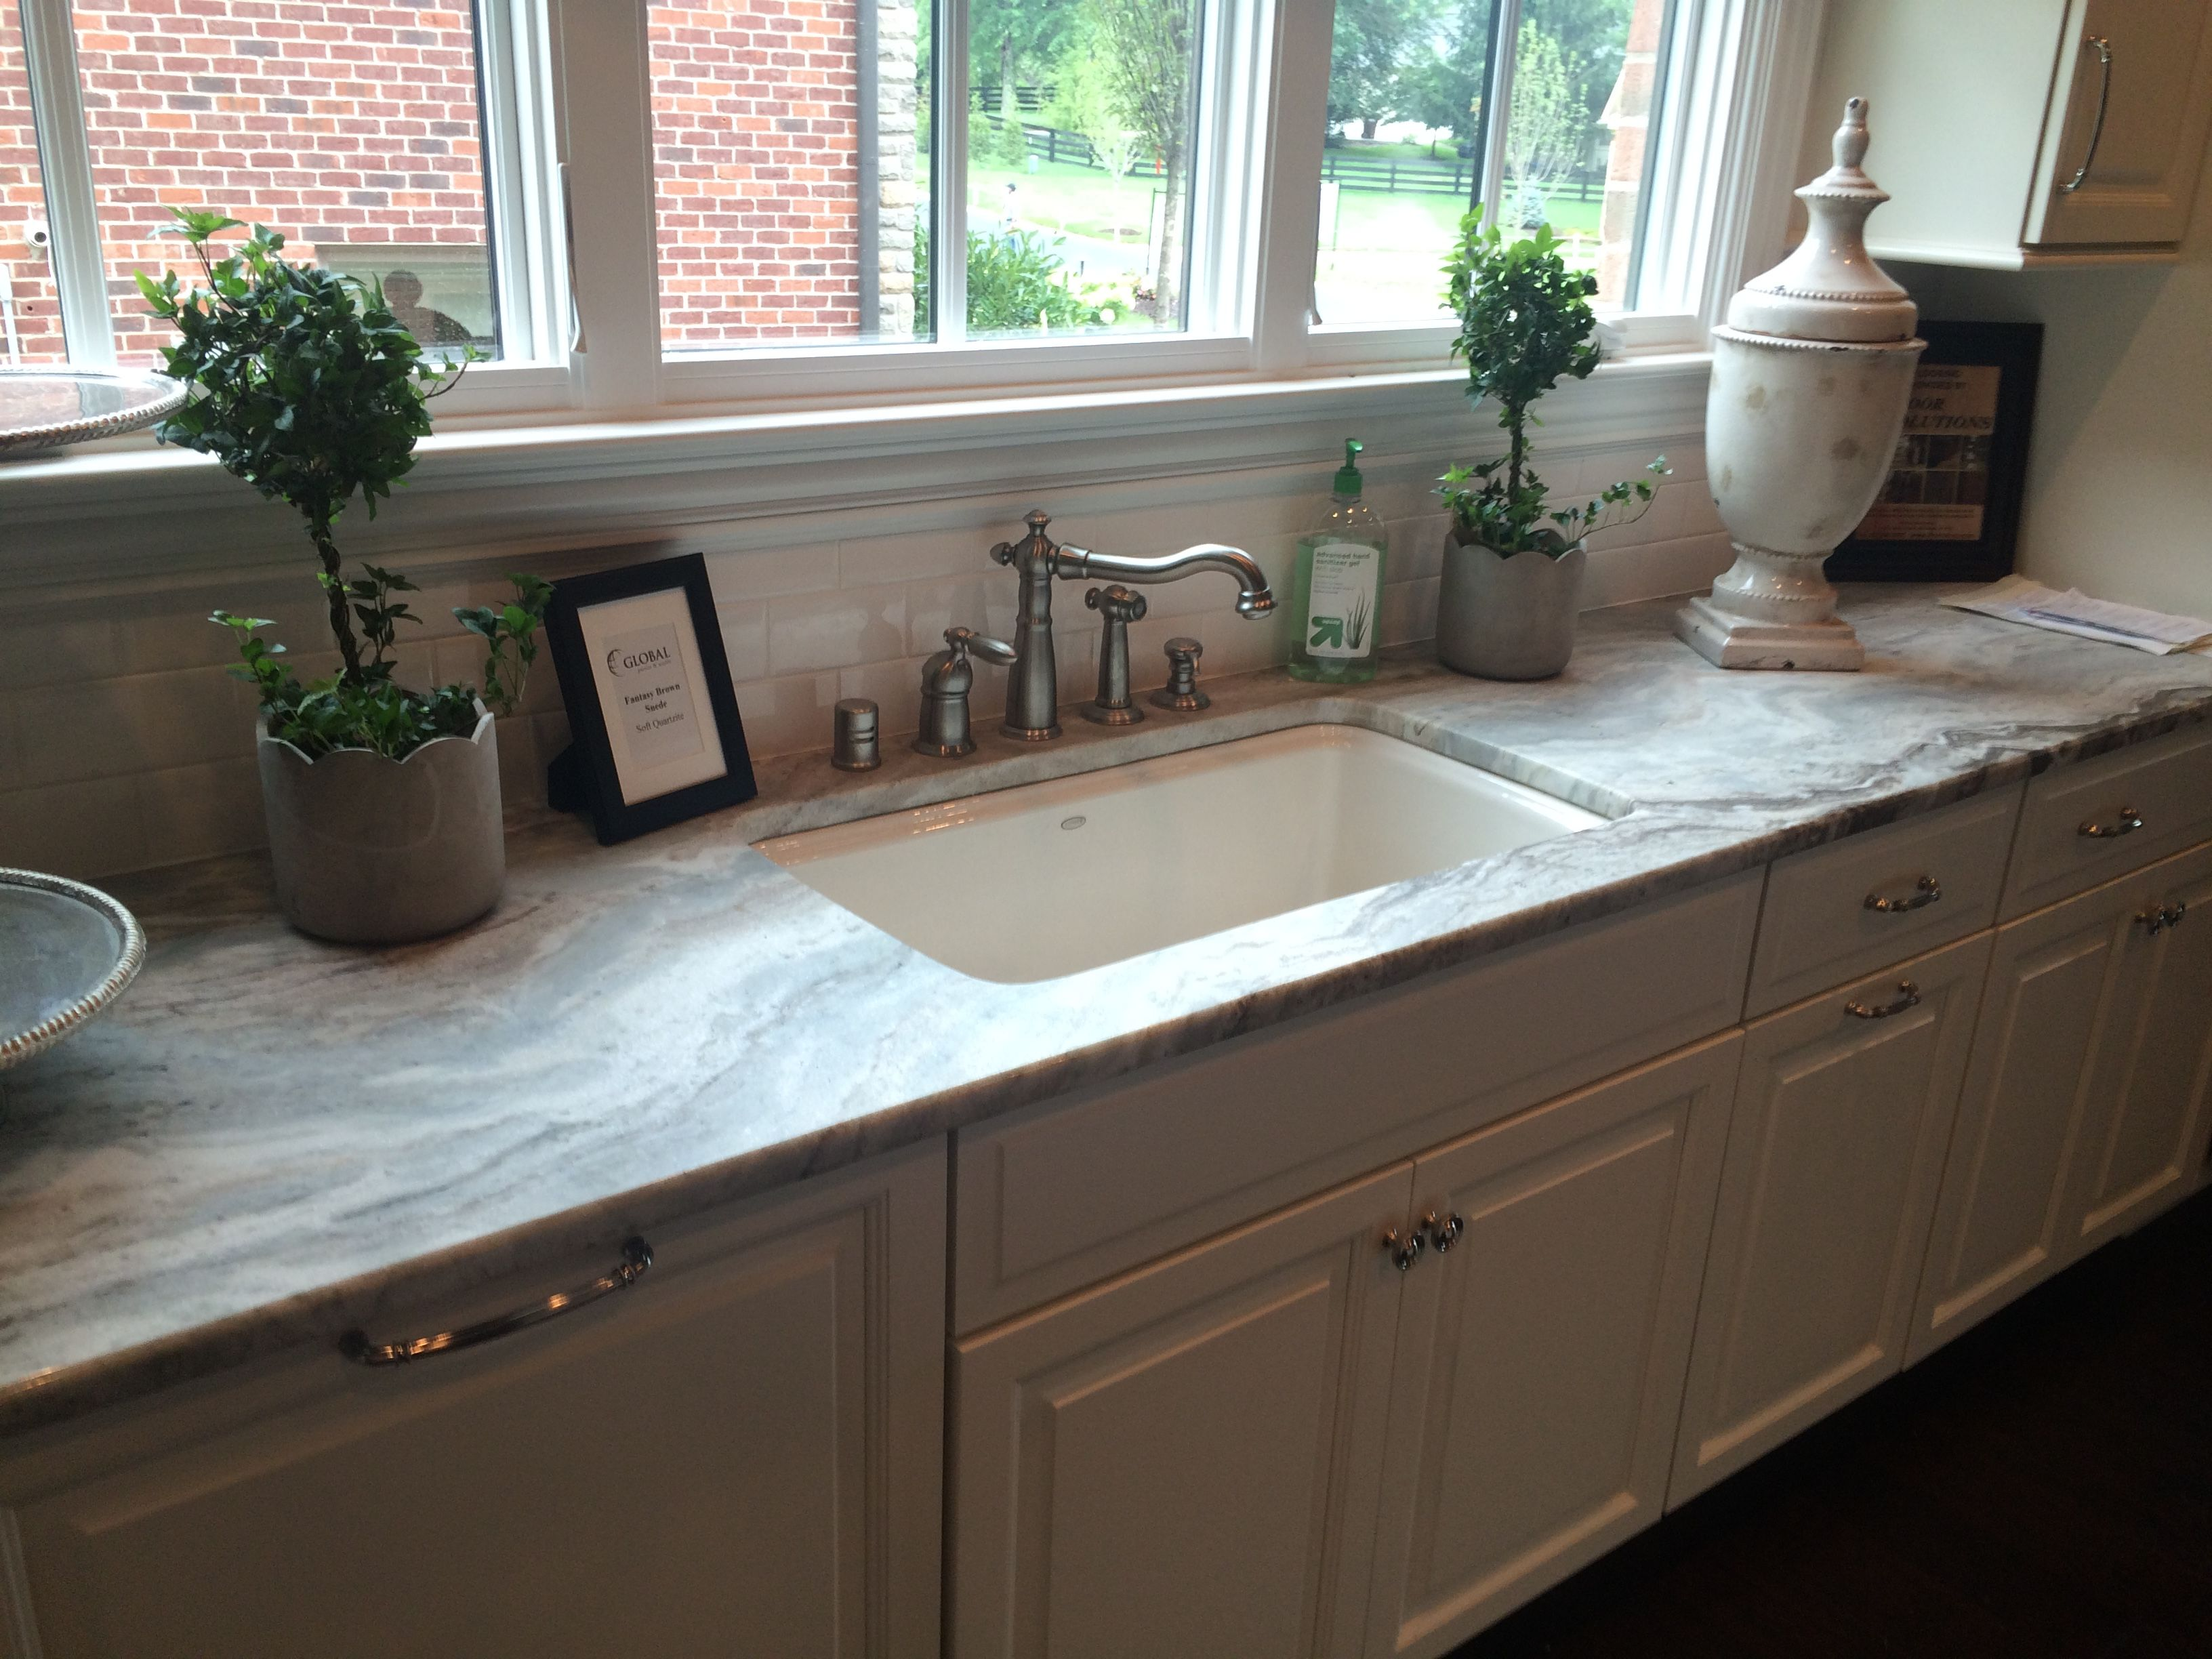 Fantasy Brown Suede Marble With White Cabinets Visit Globalgranite Com For Your Natural Stone Kitchen Countertops Granite Countertops Kitchen Kitchen Remodel